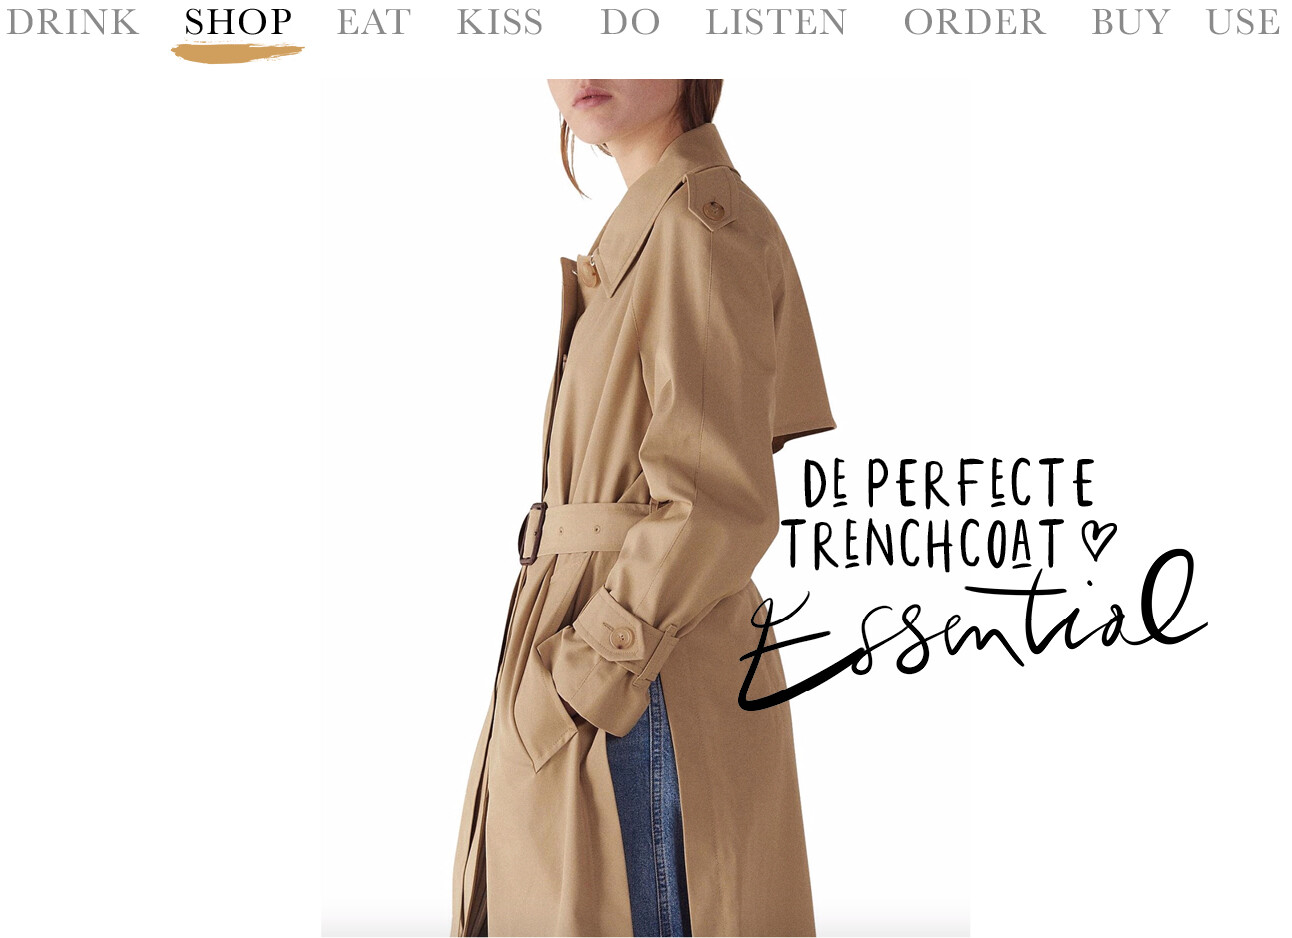 Today we shop - de perfecte trenchcoat